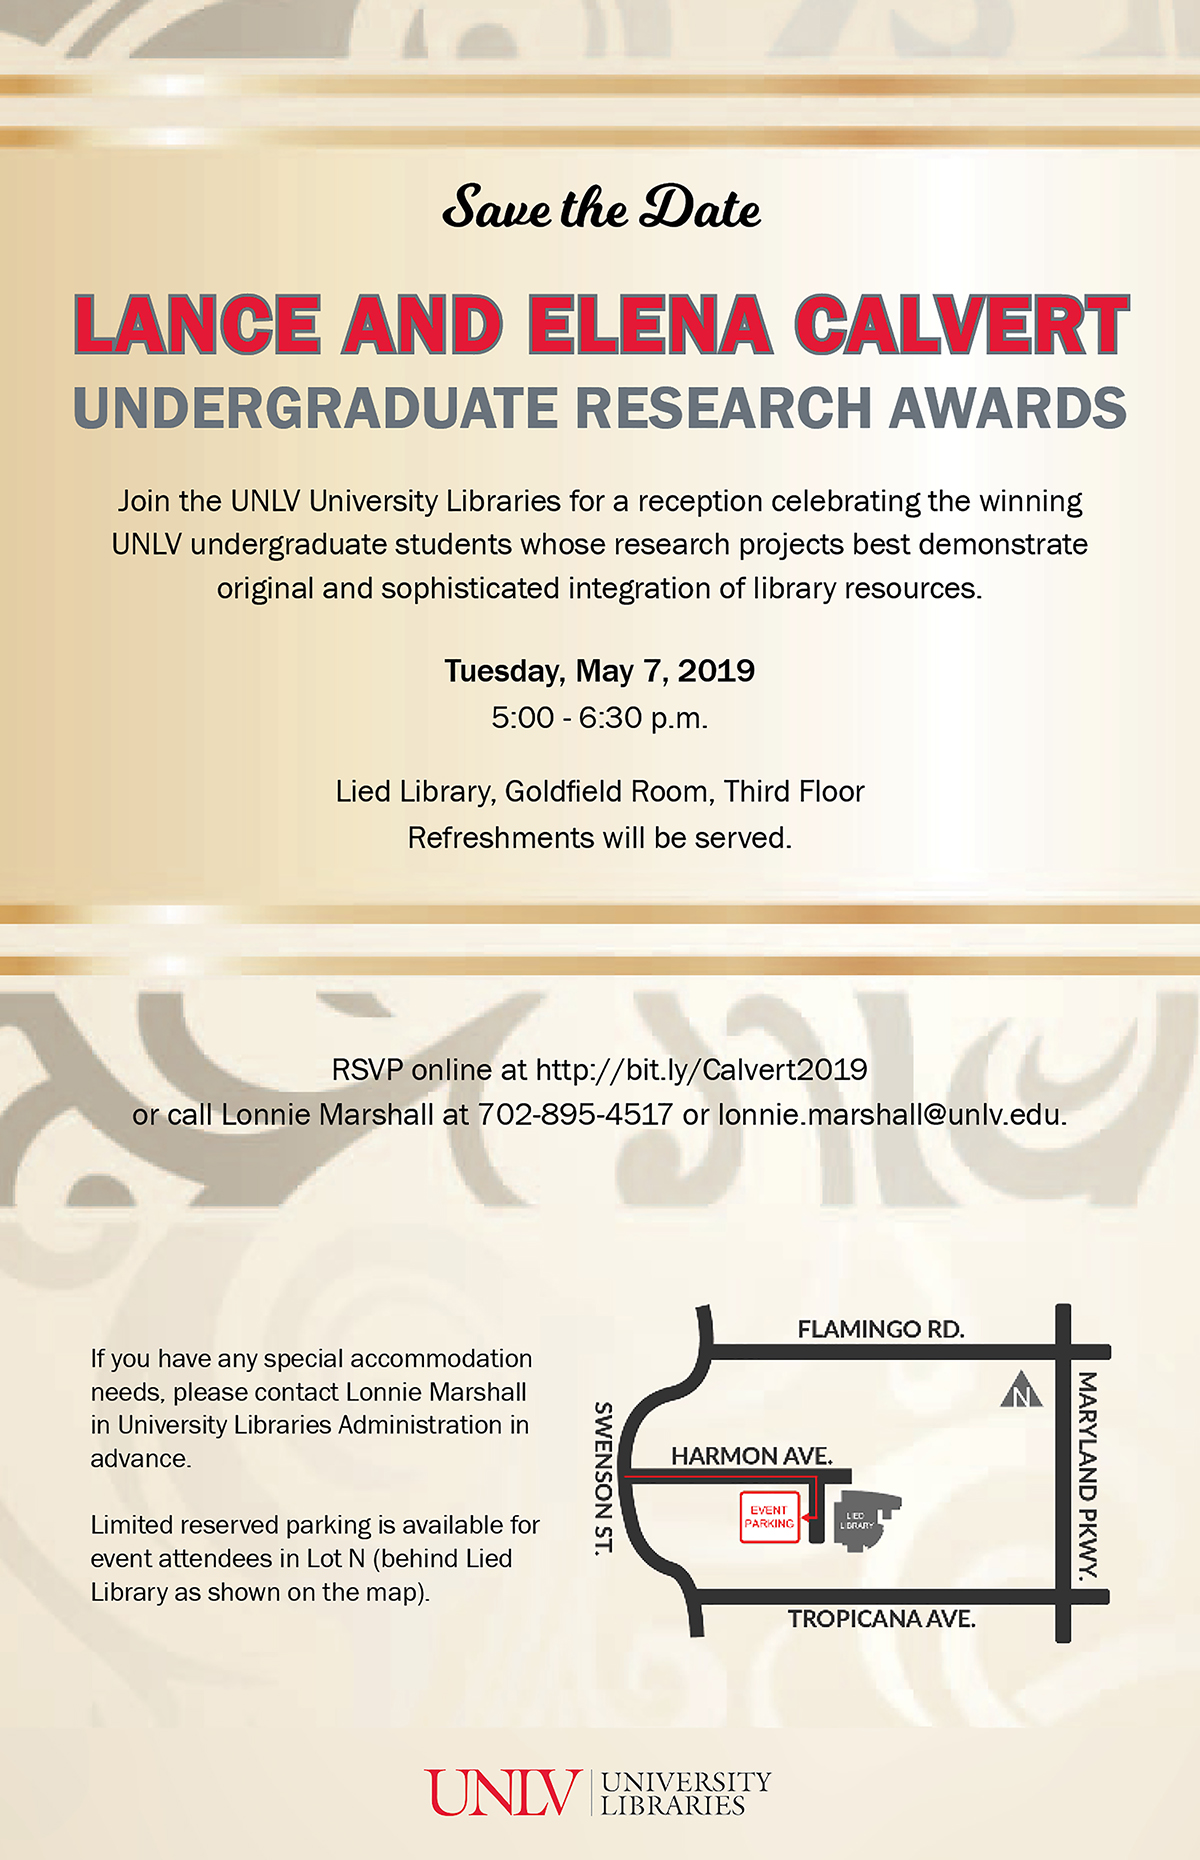 2019 Calvert Awards for Undergraduate Research